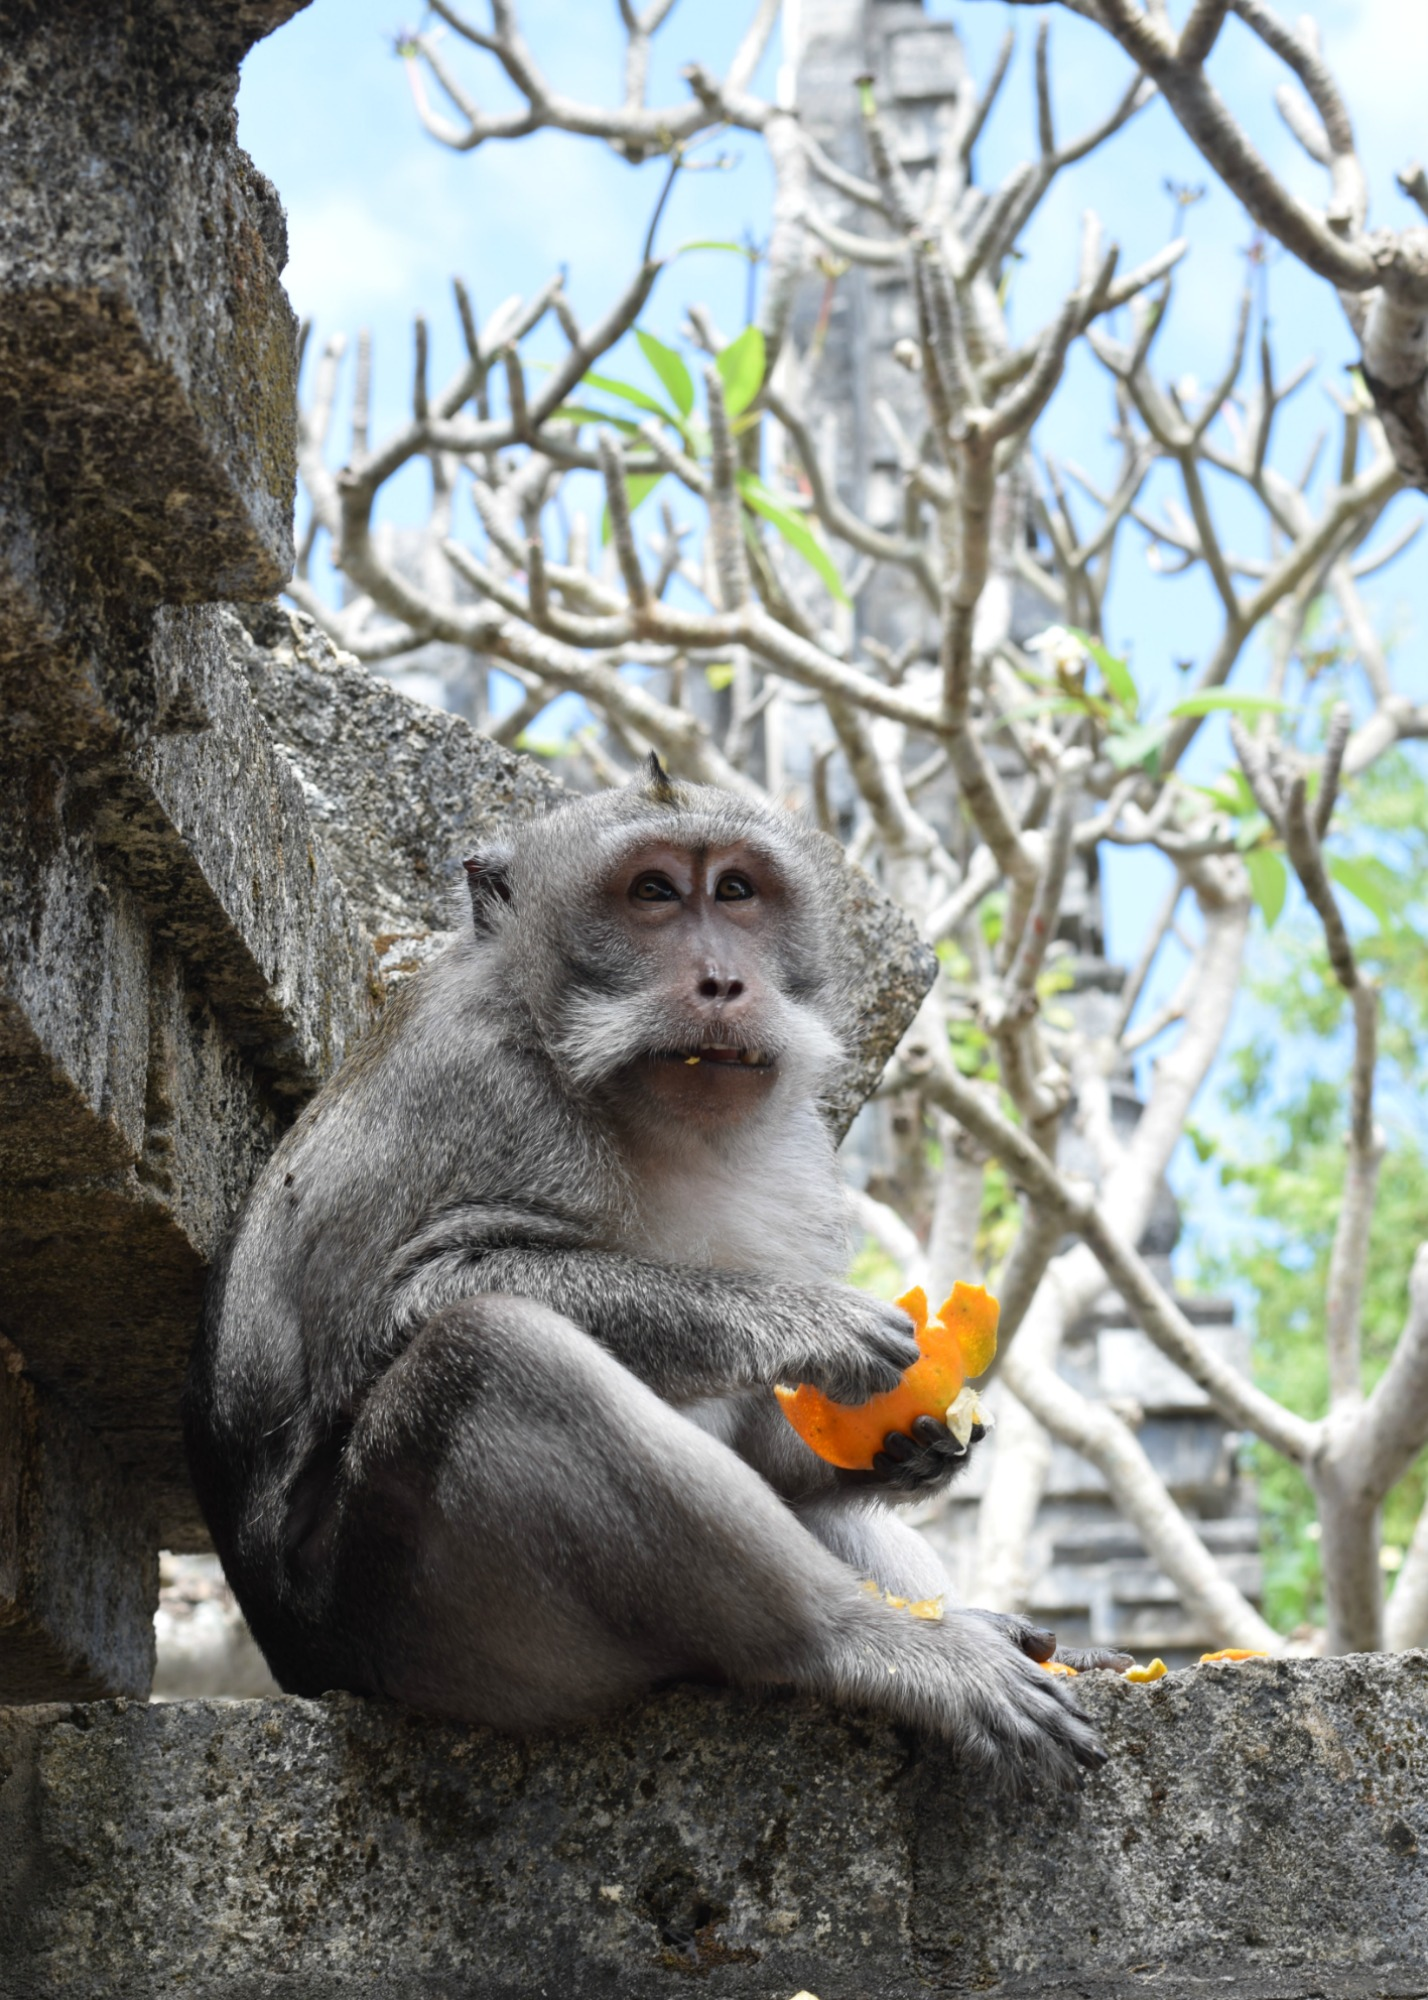 Monkey Eating - Uluwatu Temple - Bali, Indonesia - Our Bali Trip - Communikait